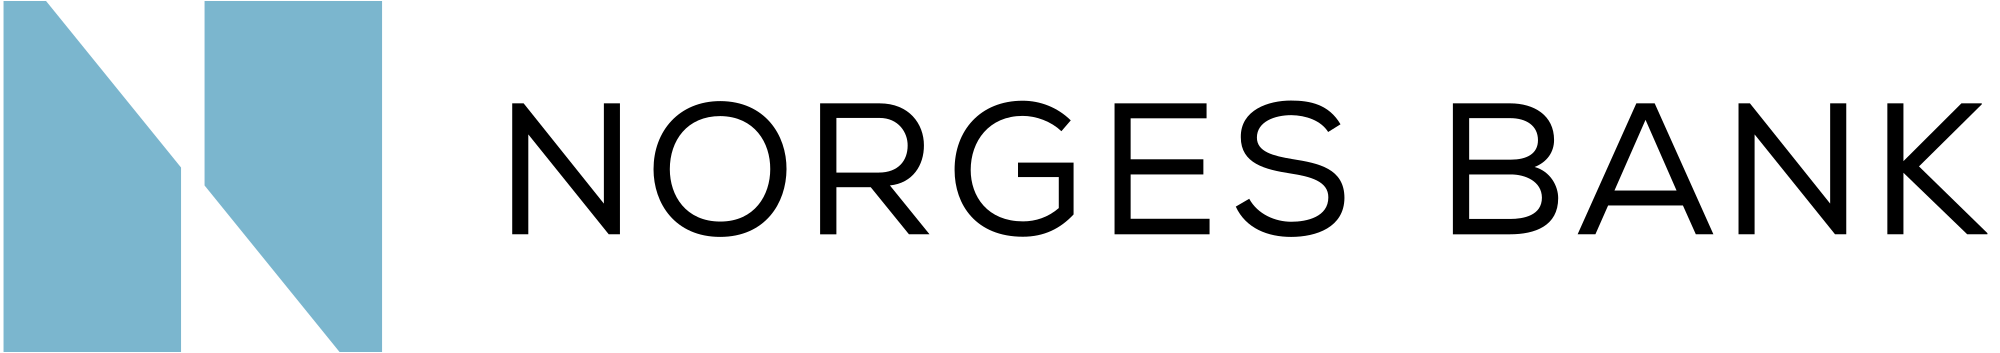 Norges Bank Logo